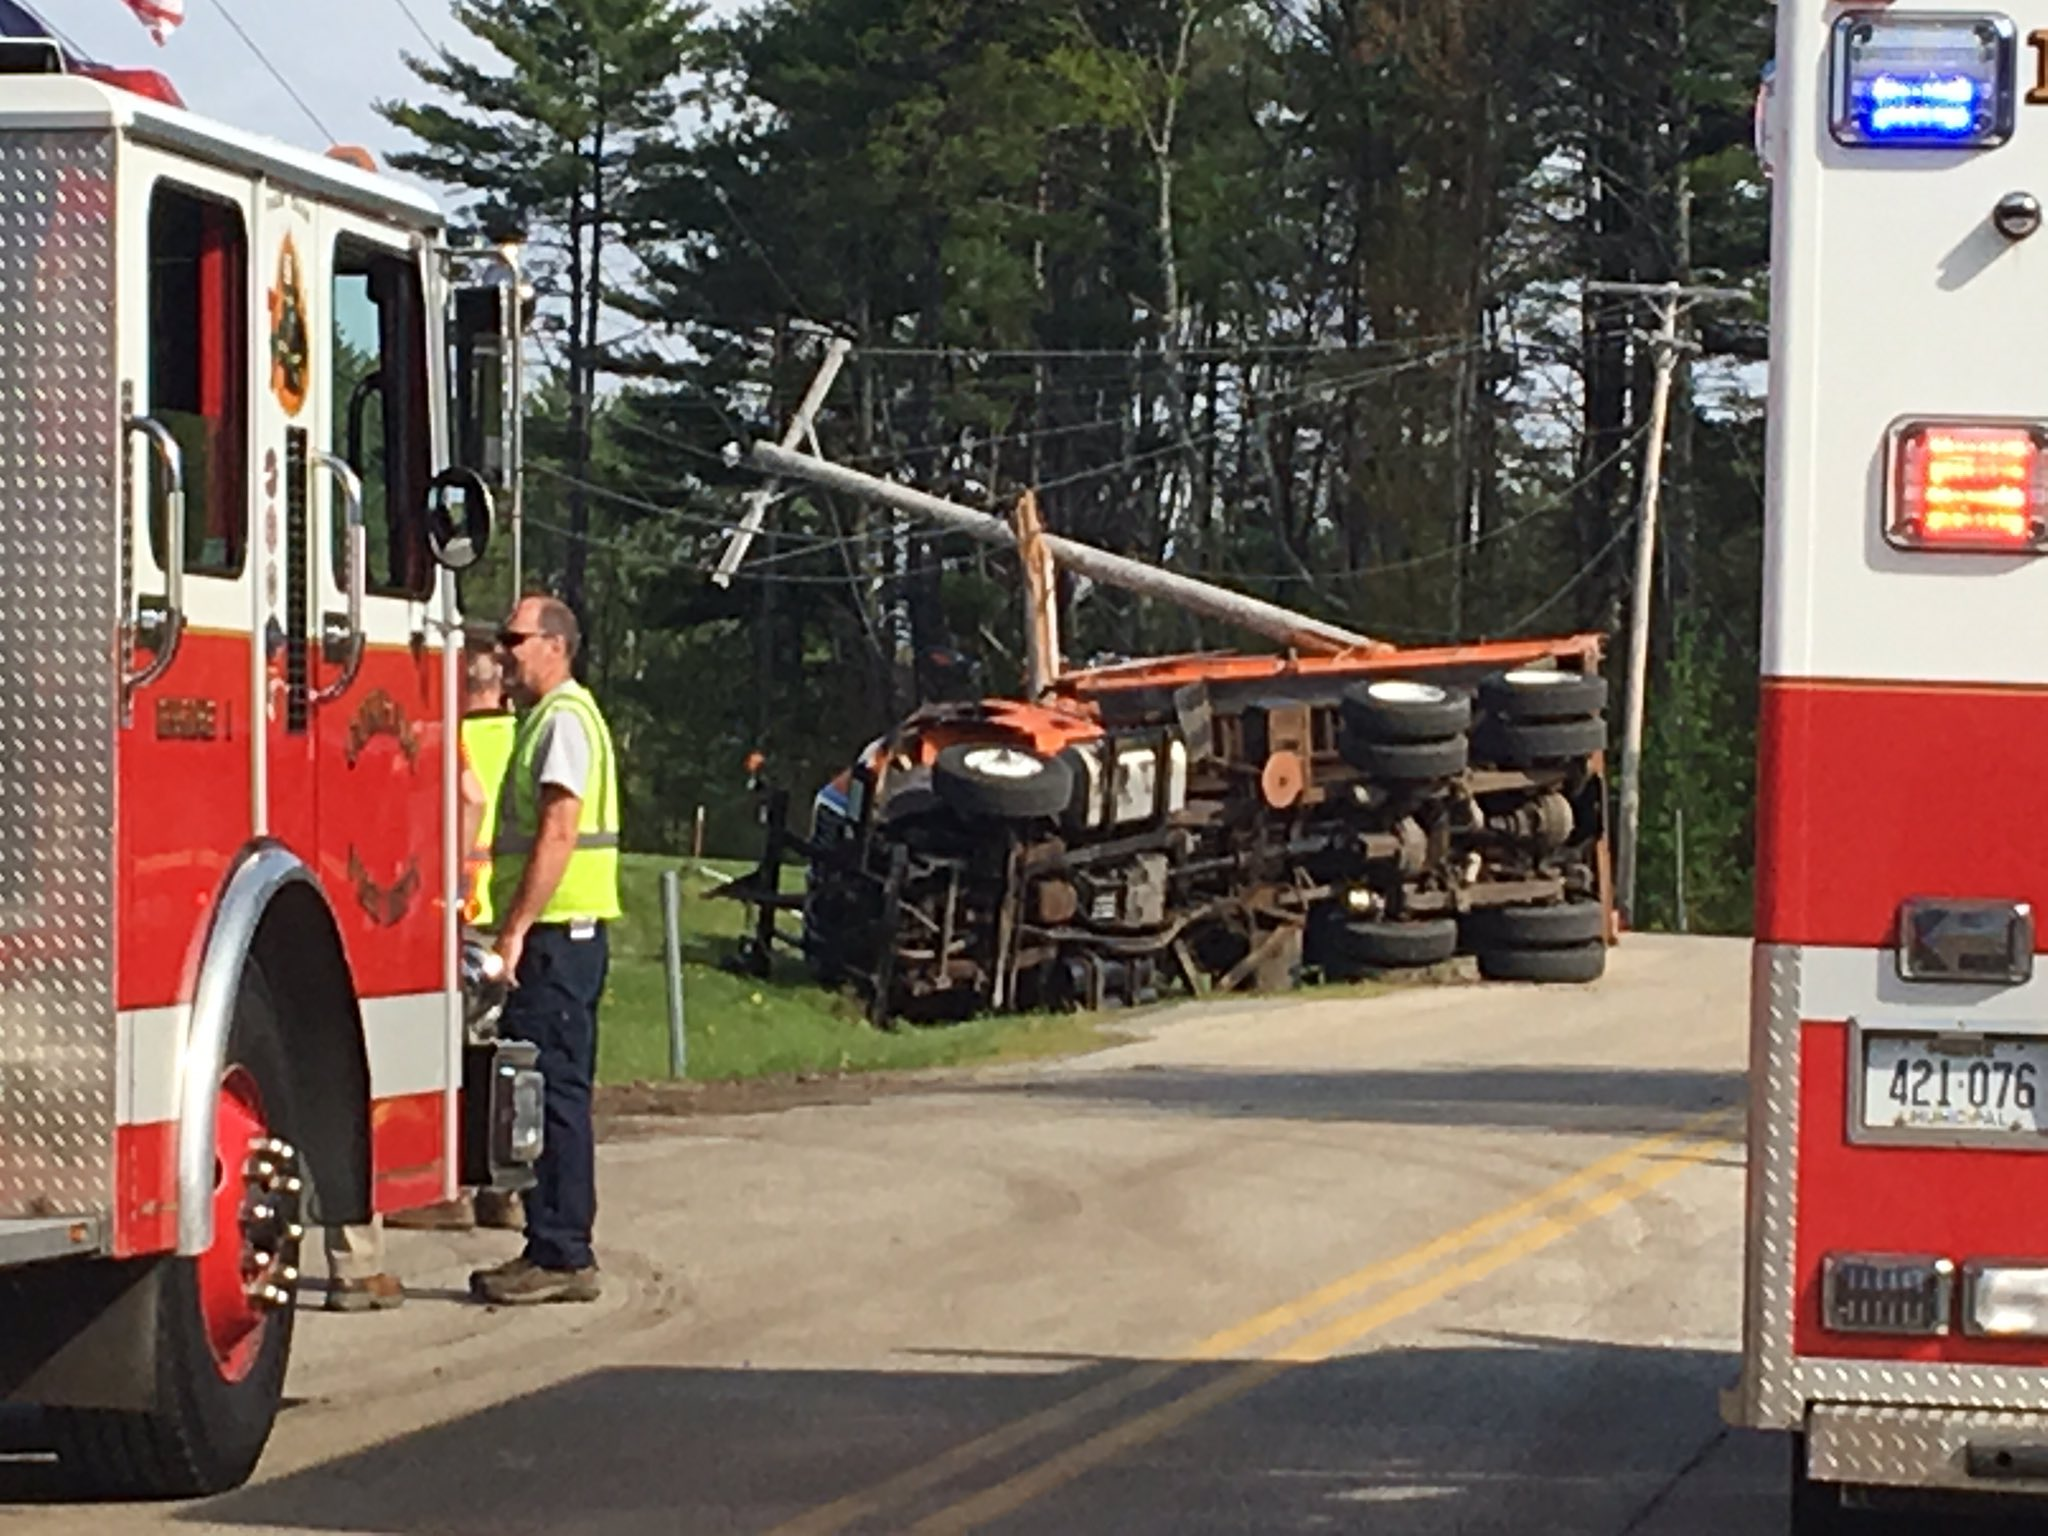 Police say a dump truck has crashed in Gorham, taking out a telephone police and trapping the driver inside. (WGME)